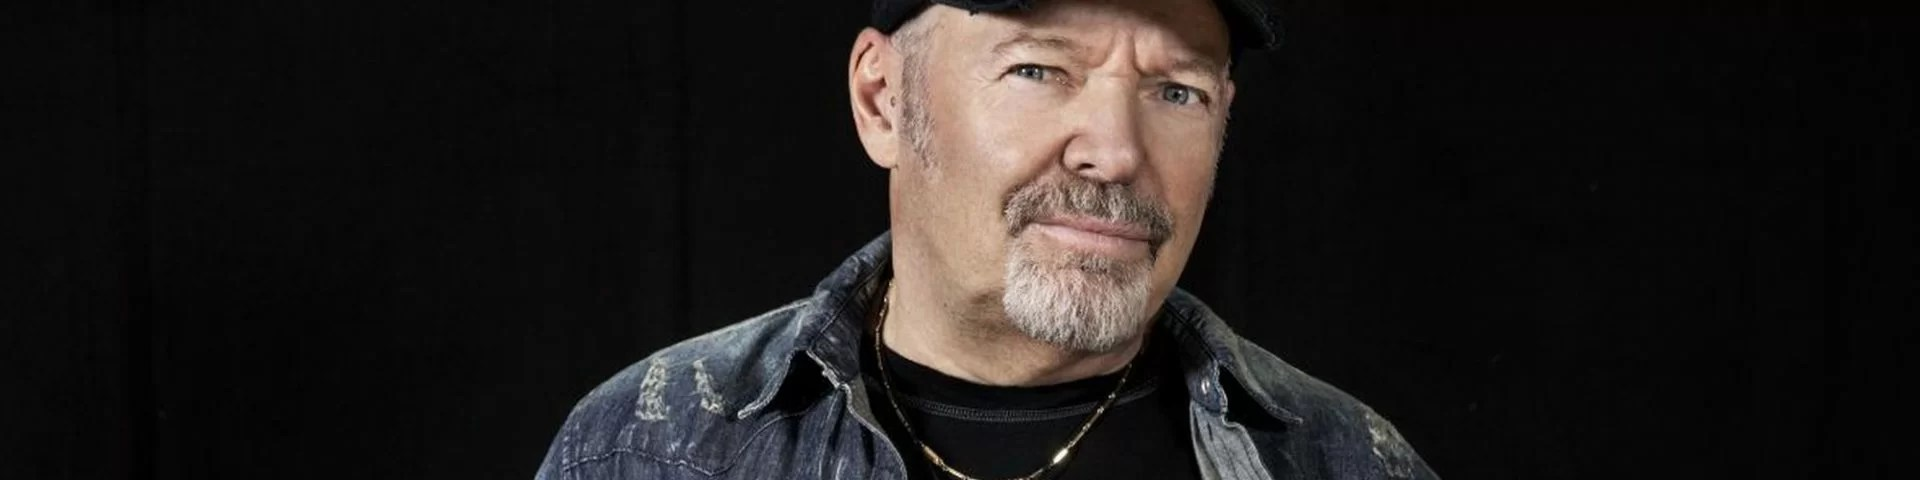 Accordi E Vasco Rossi Vasco Rossi Tour 2018 Scaletta E Video Della Data Zero